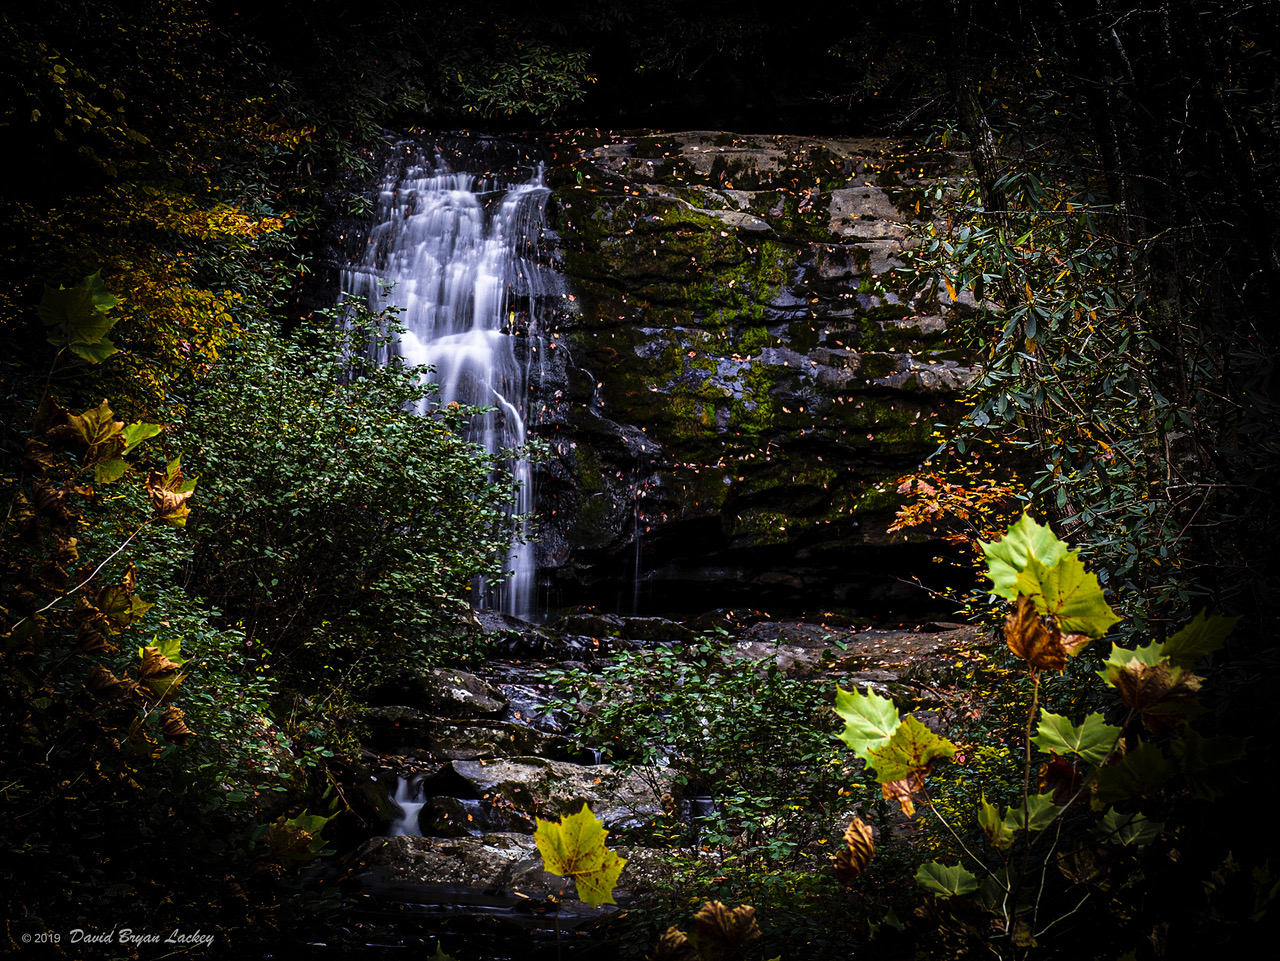 Waterfall in the Forest by dave.gt in dave.gt